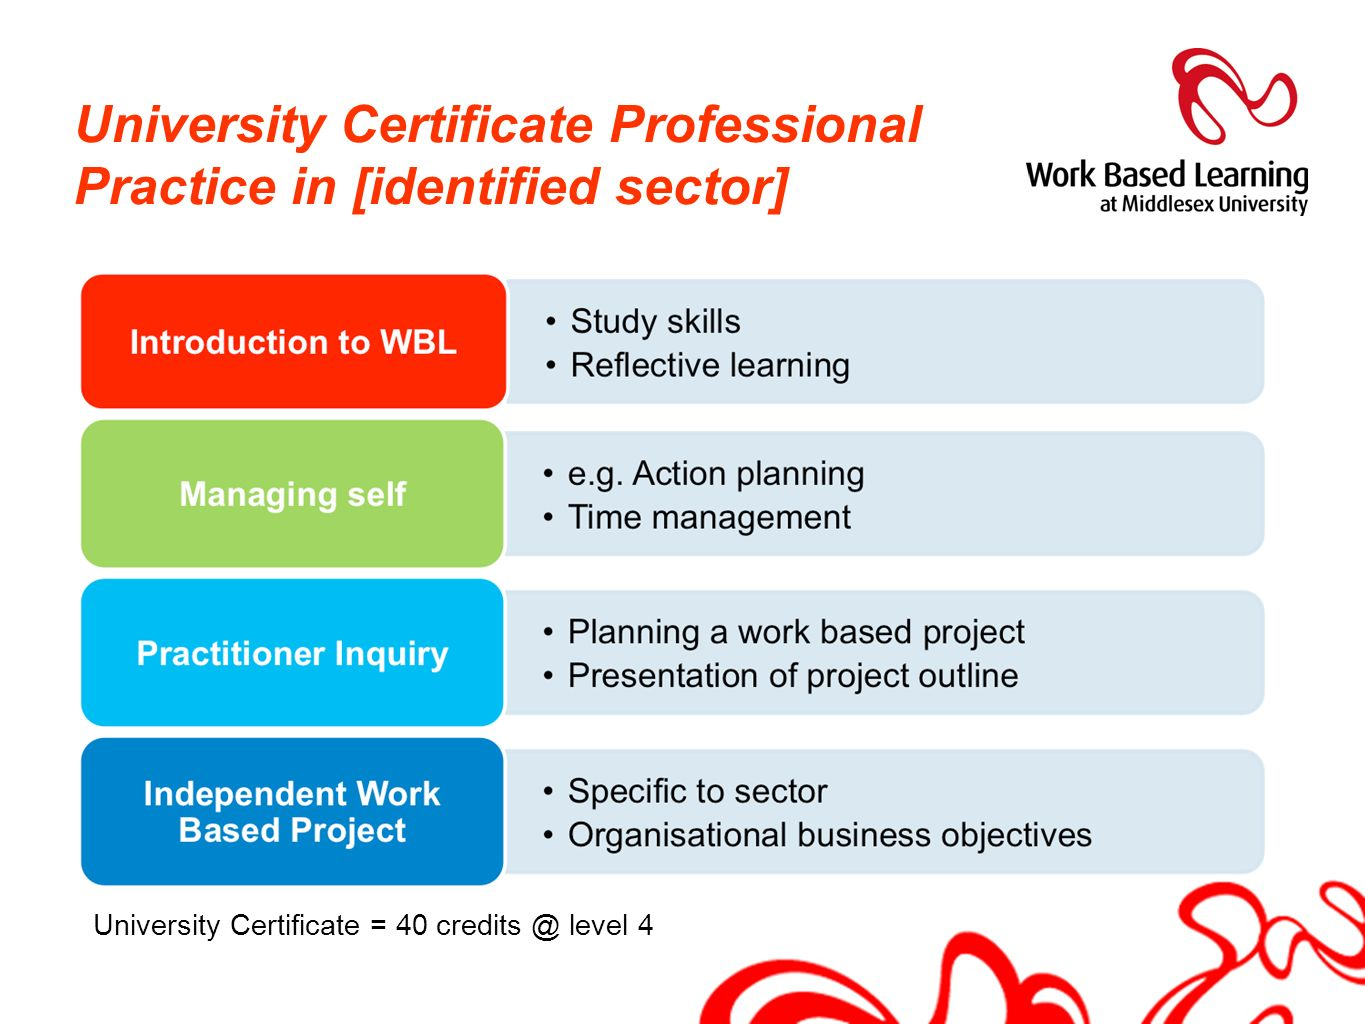 University Certificate Professional Practice in [identified sector]